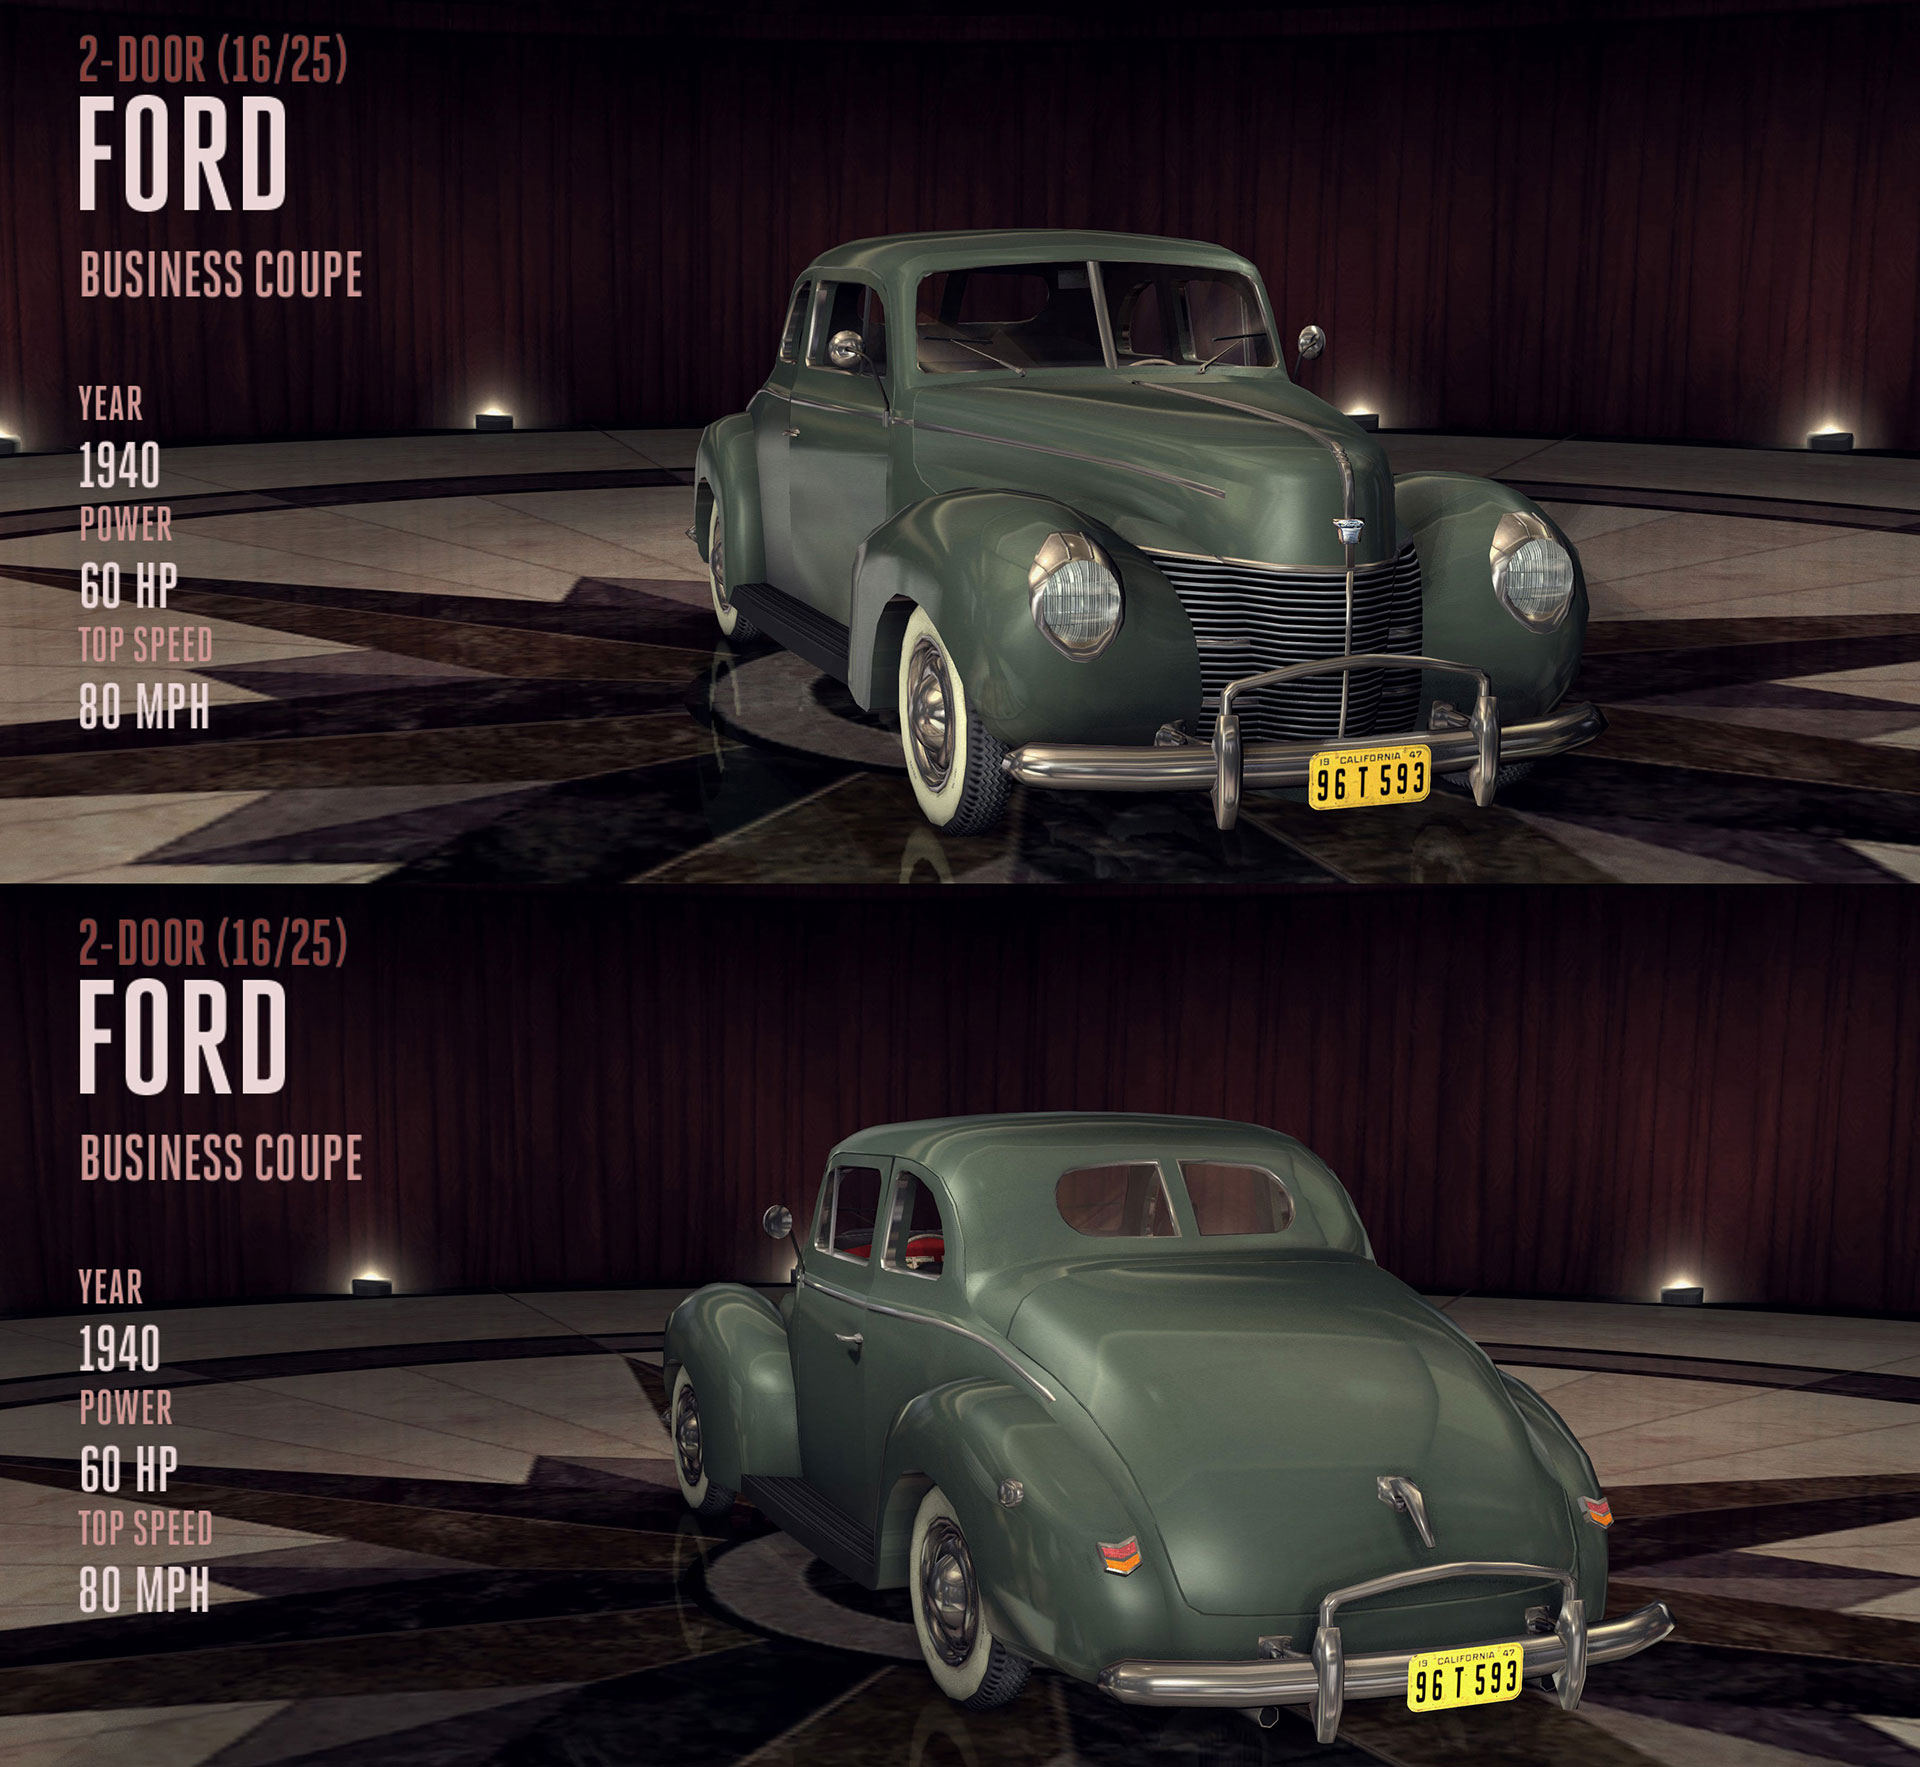 Archivo:1940-ford-business-coupe.jpg